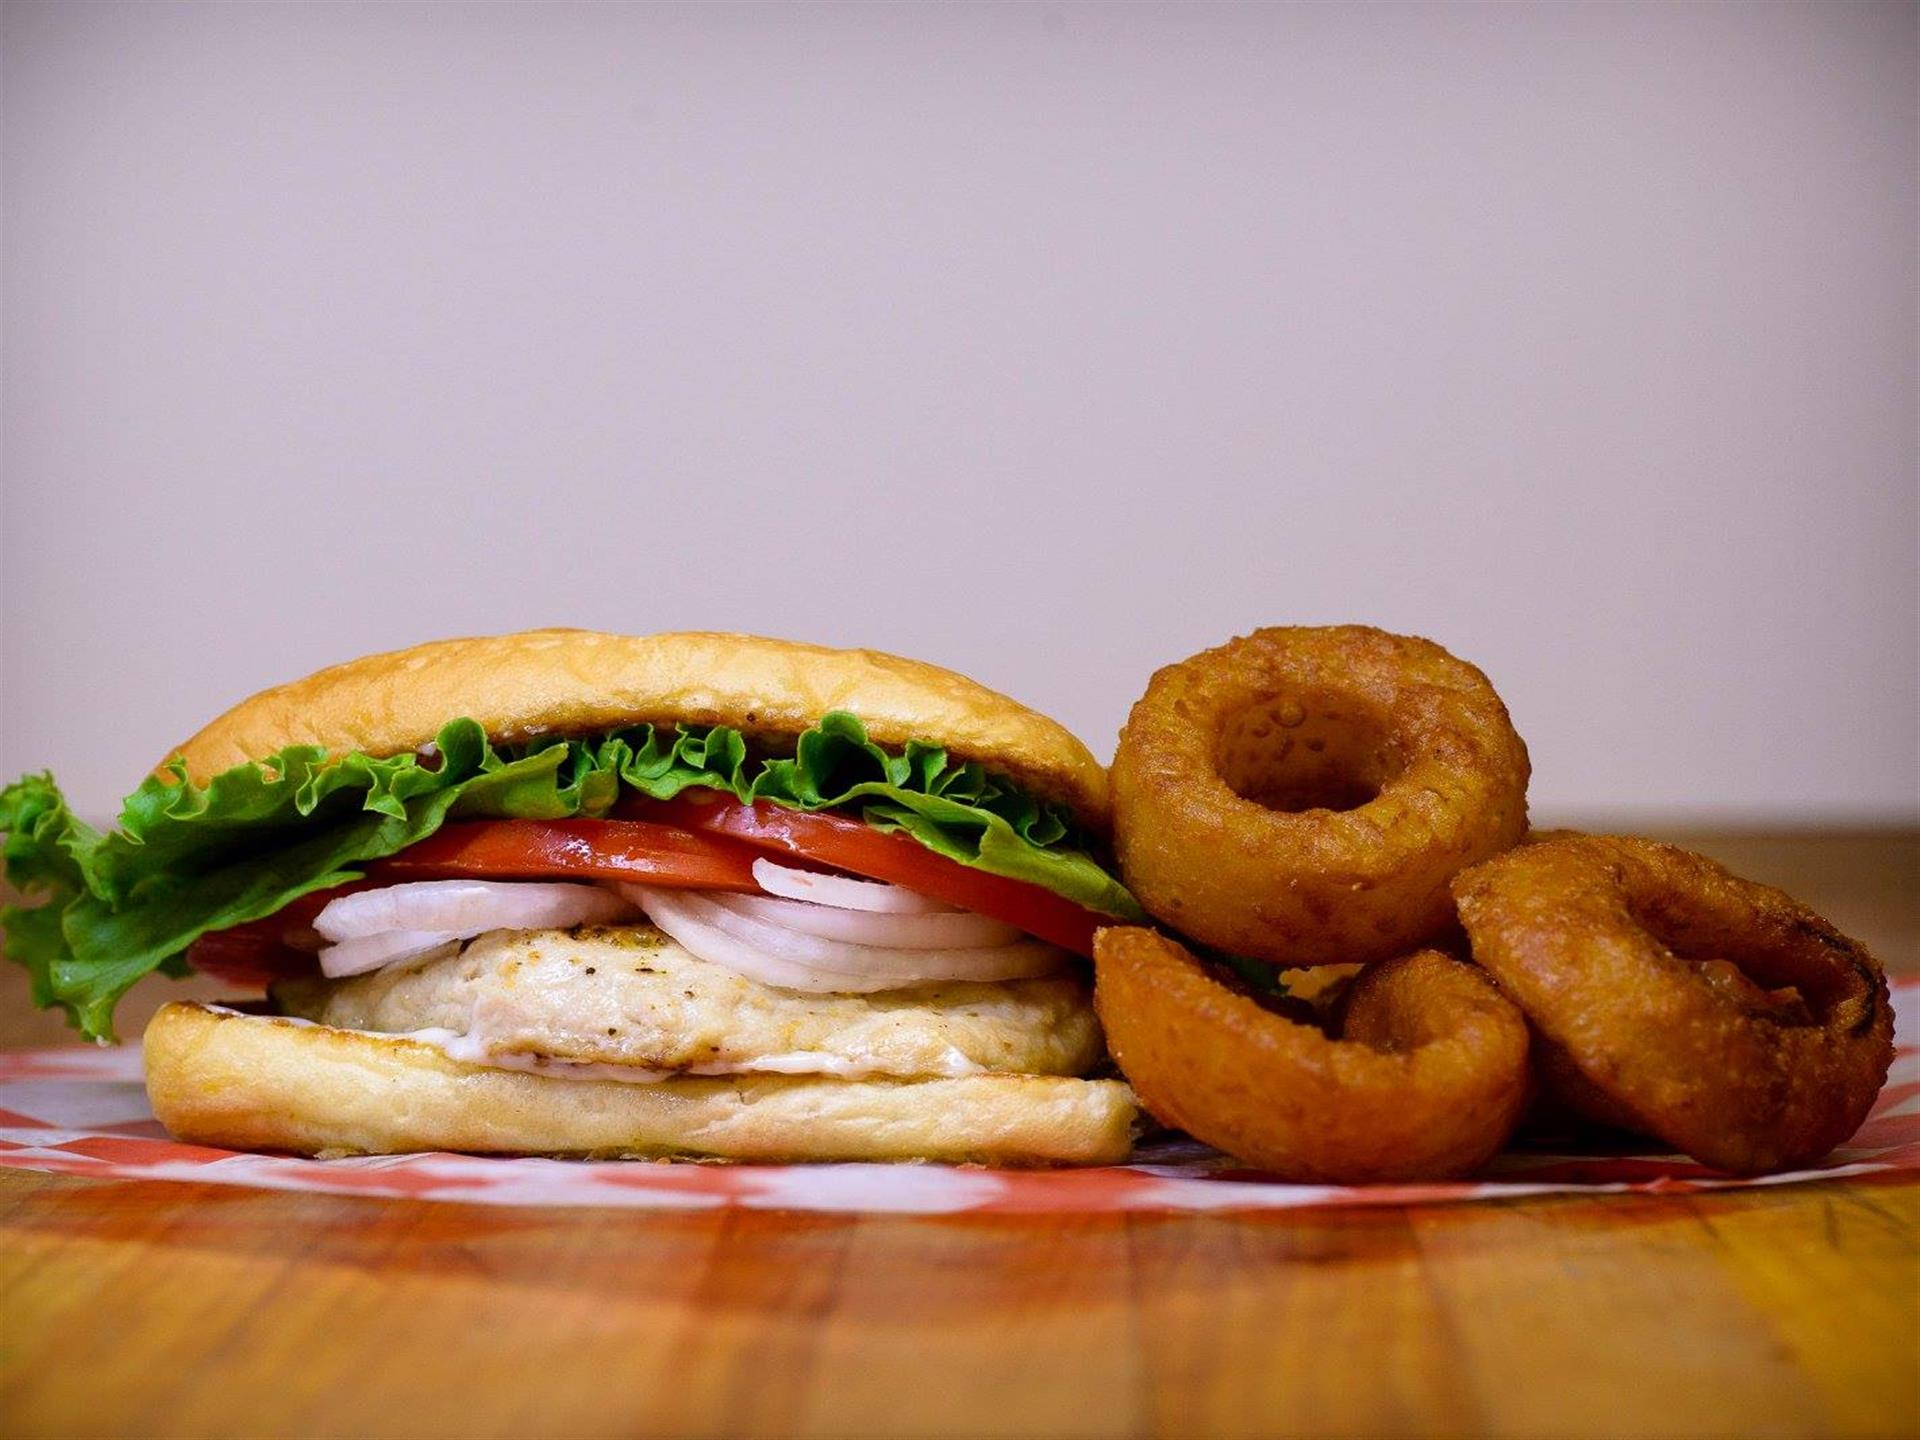 grouper sandwich with a side of onion rings